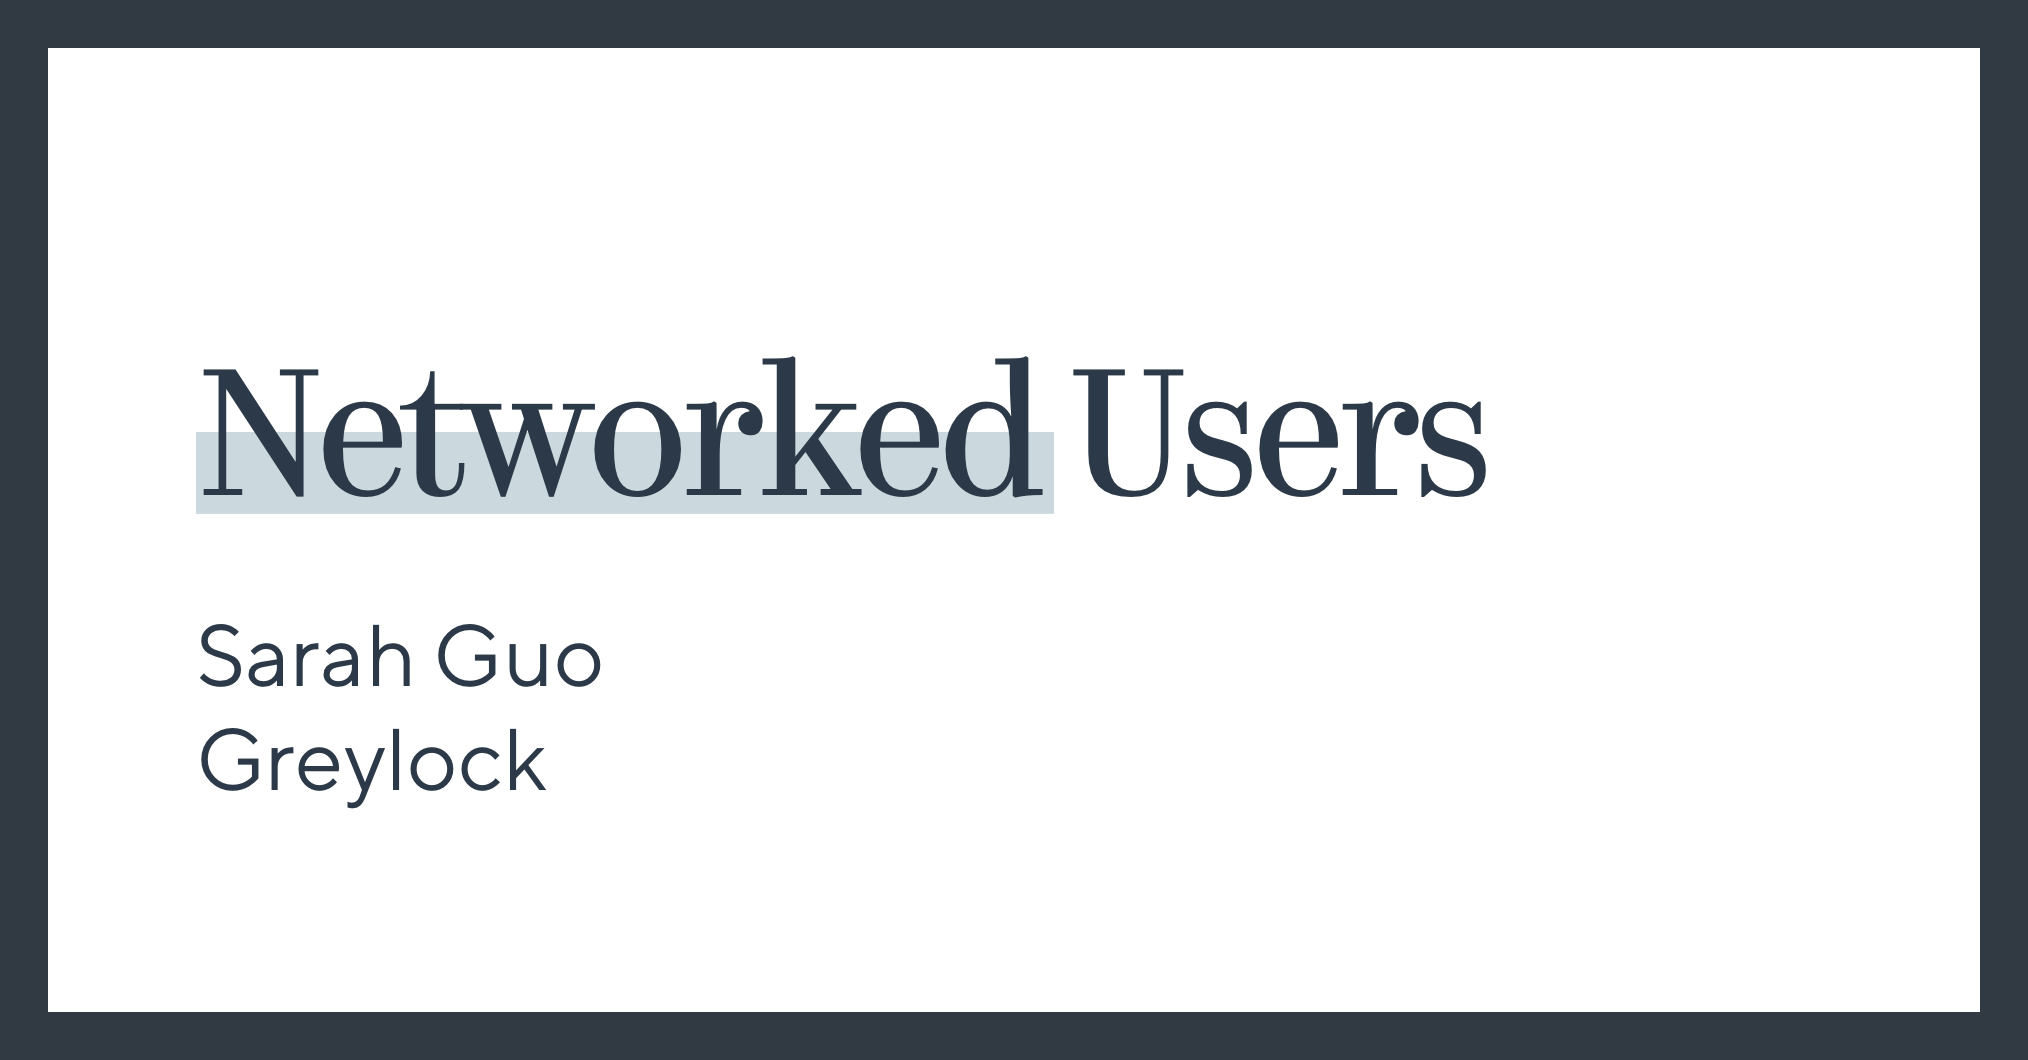 Networked Users